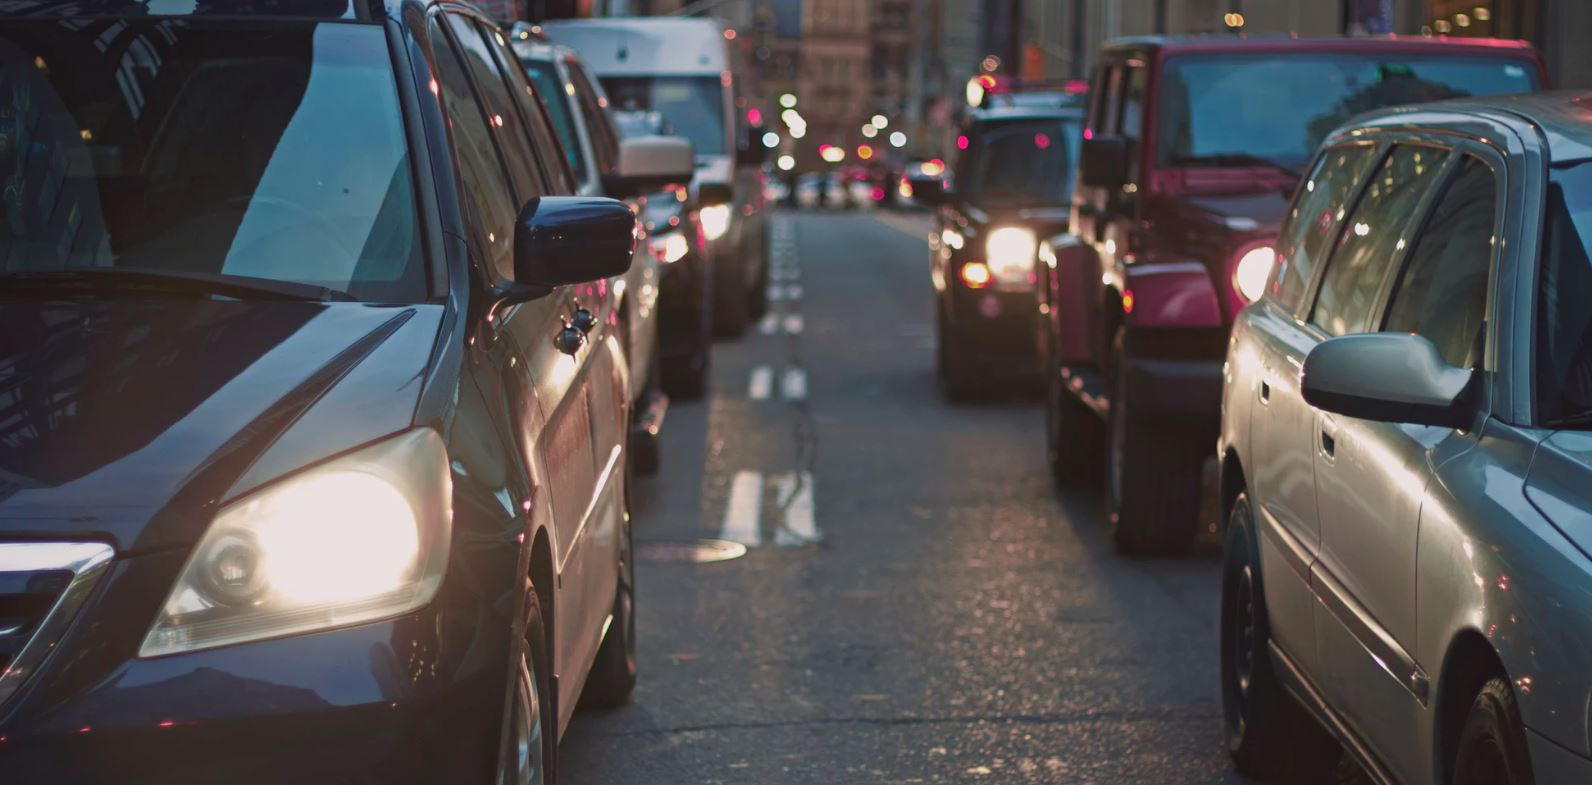 Being stuck in traffic doesn't have to cause unhappiness